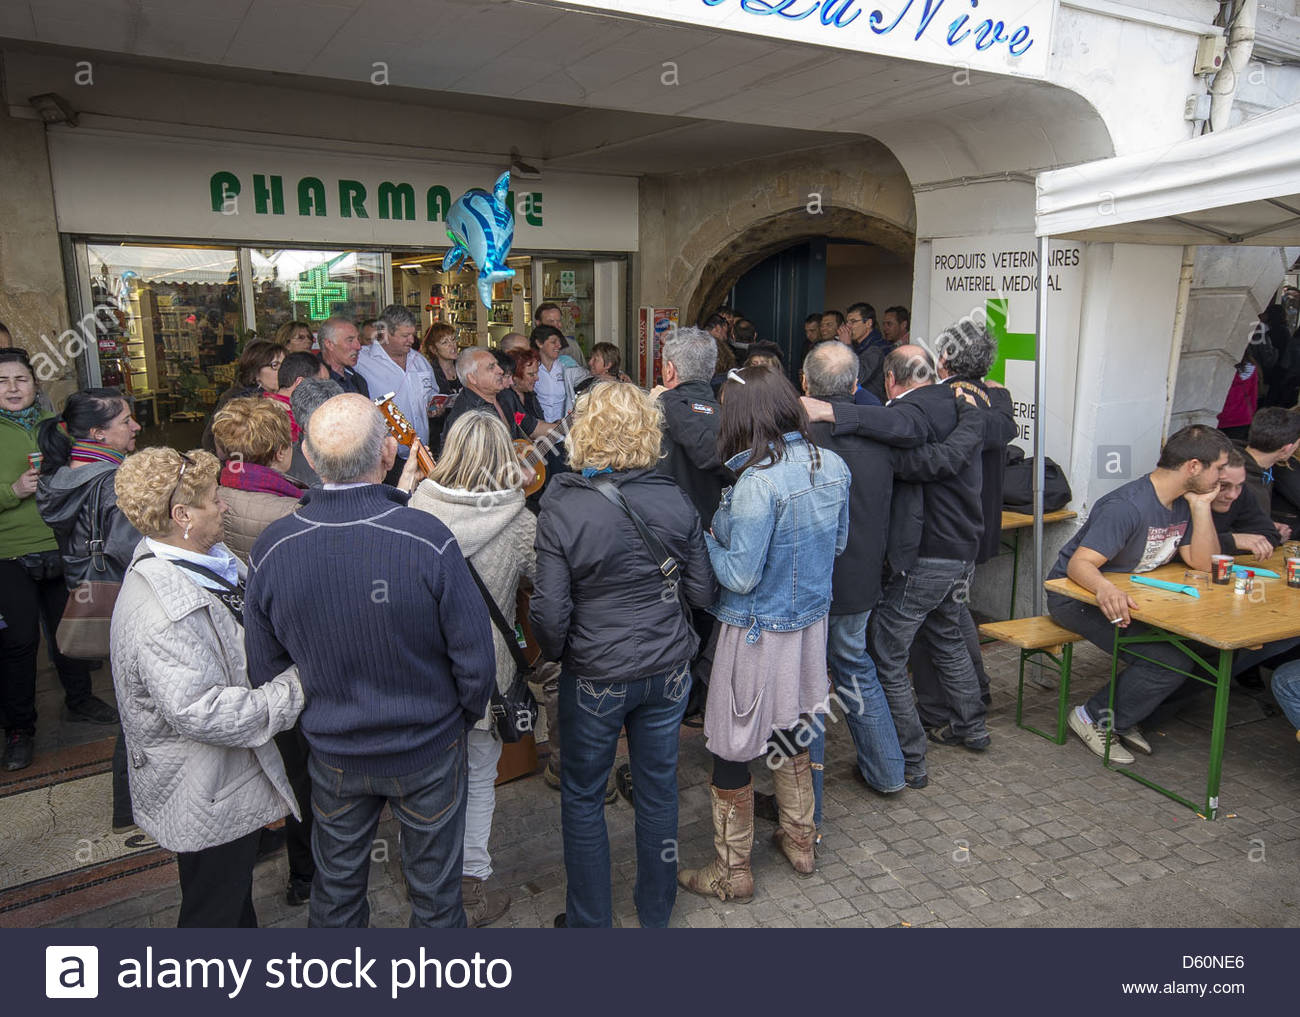 Crowds watching street entertainment in Bayonne, Aquitaine, Southwestern France - Stock Image